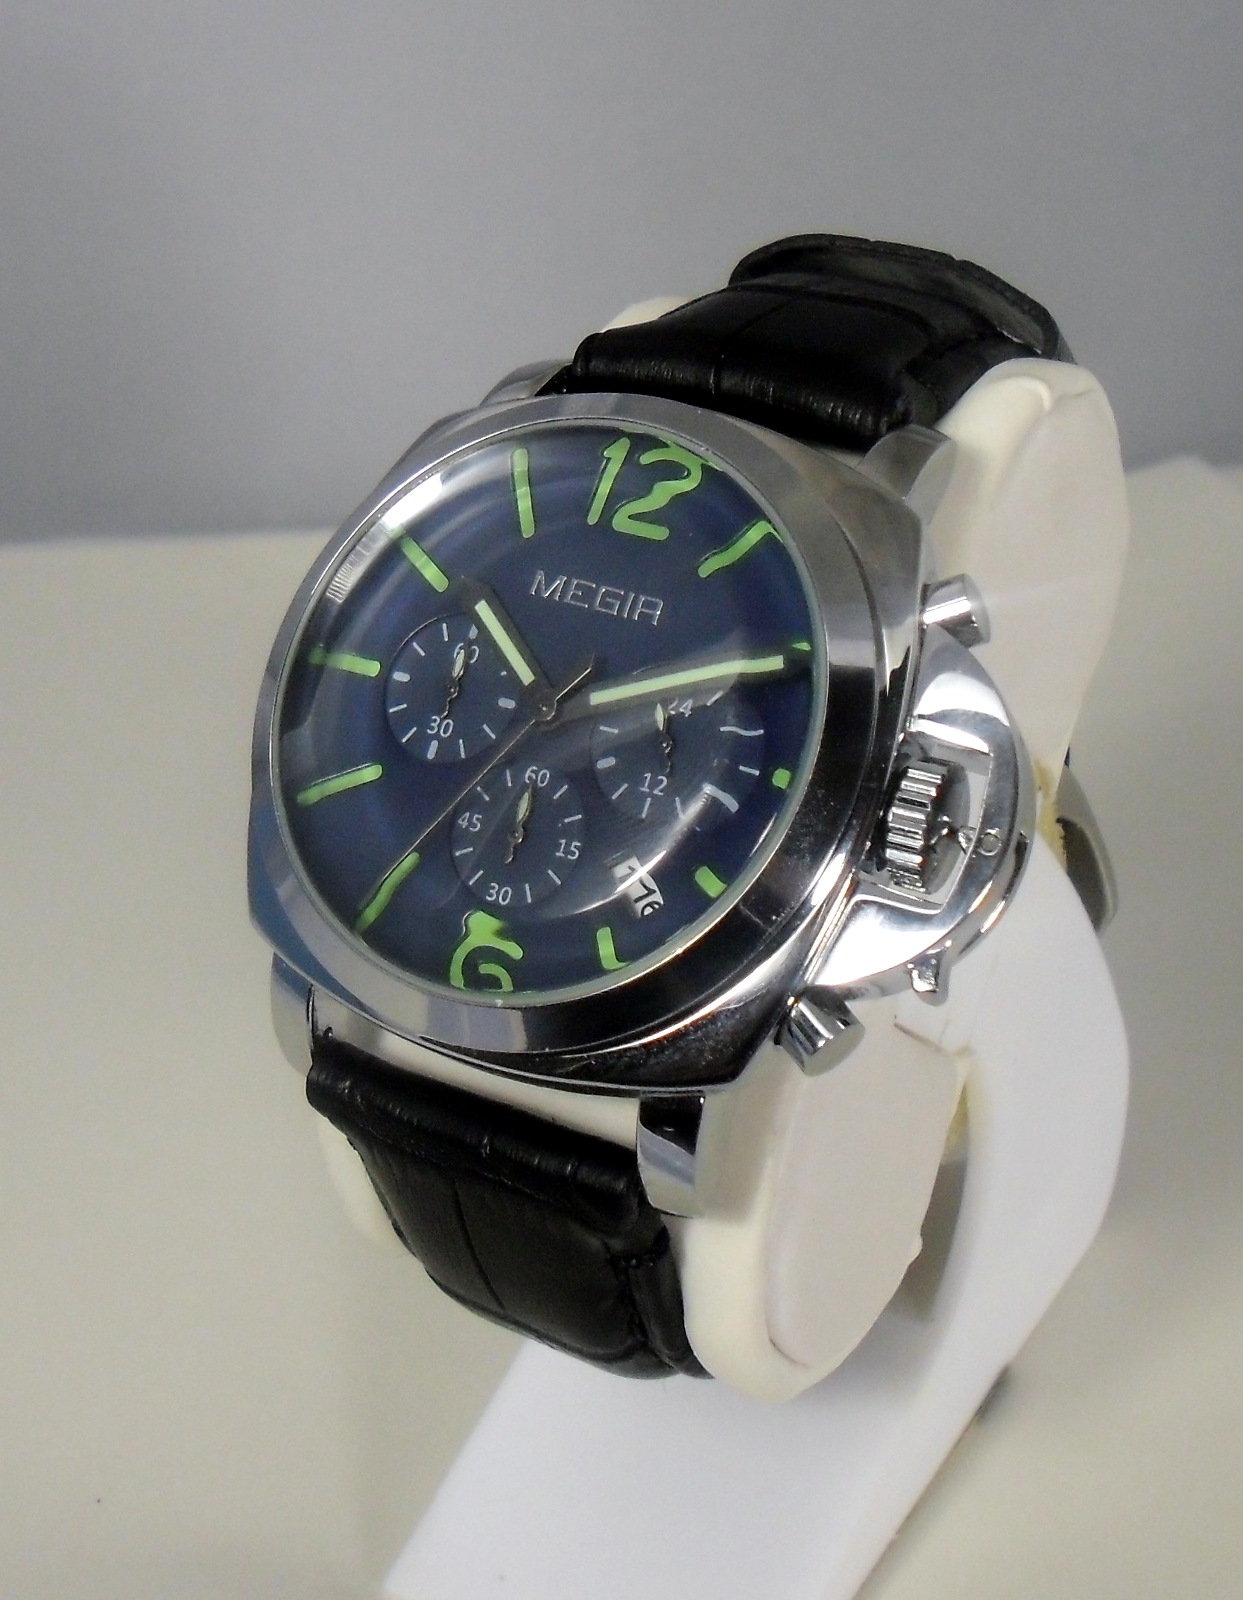 Who Manufactures Megir Watches AsianWatchescom